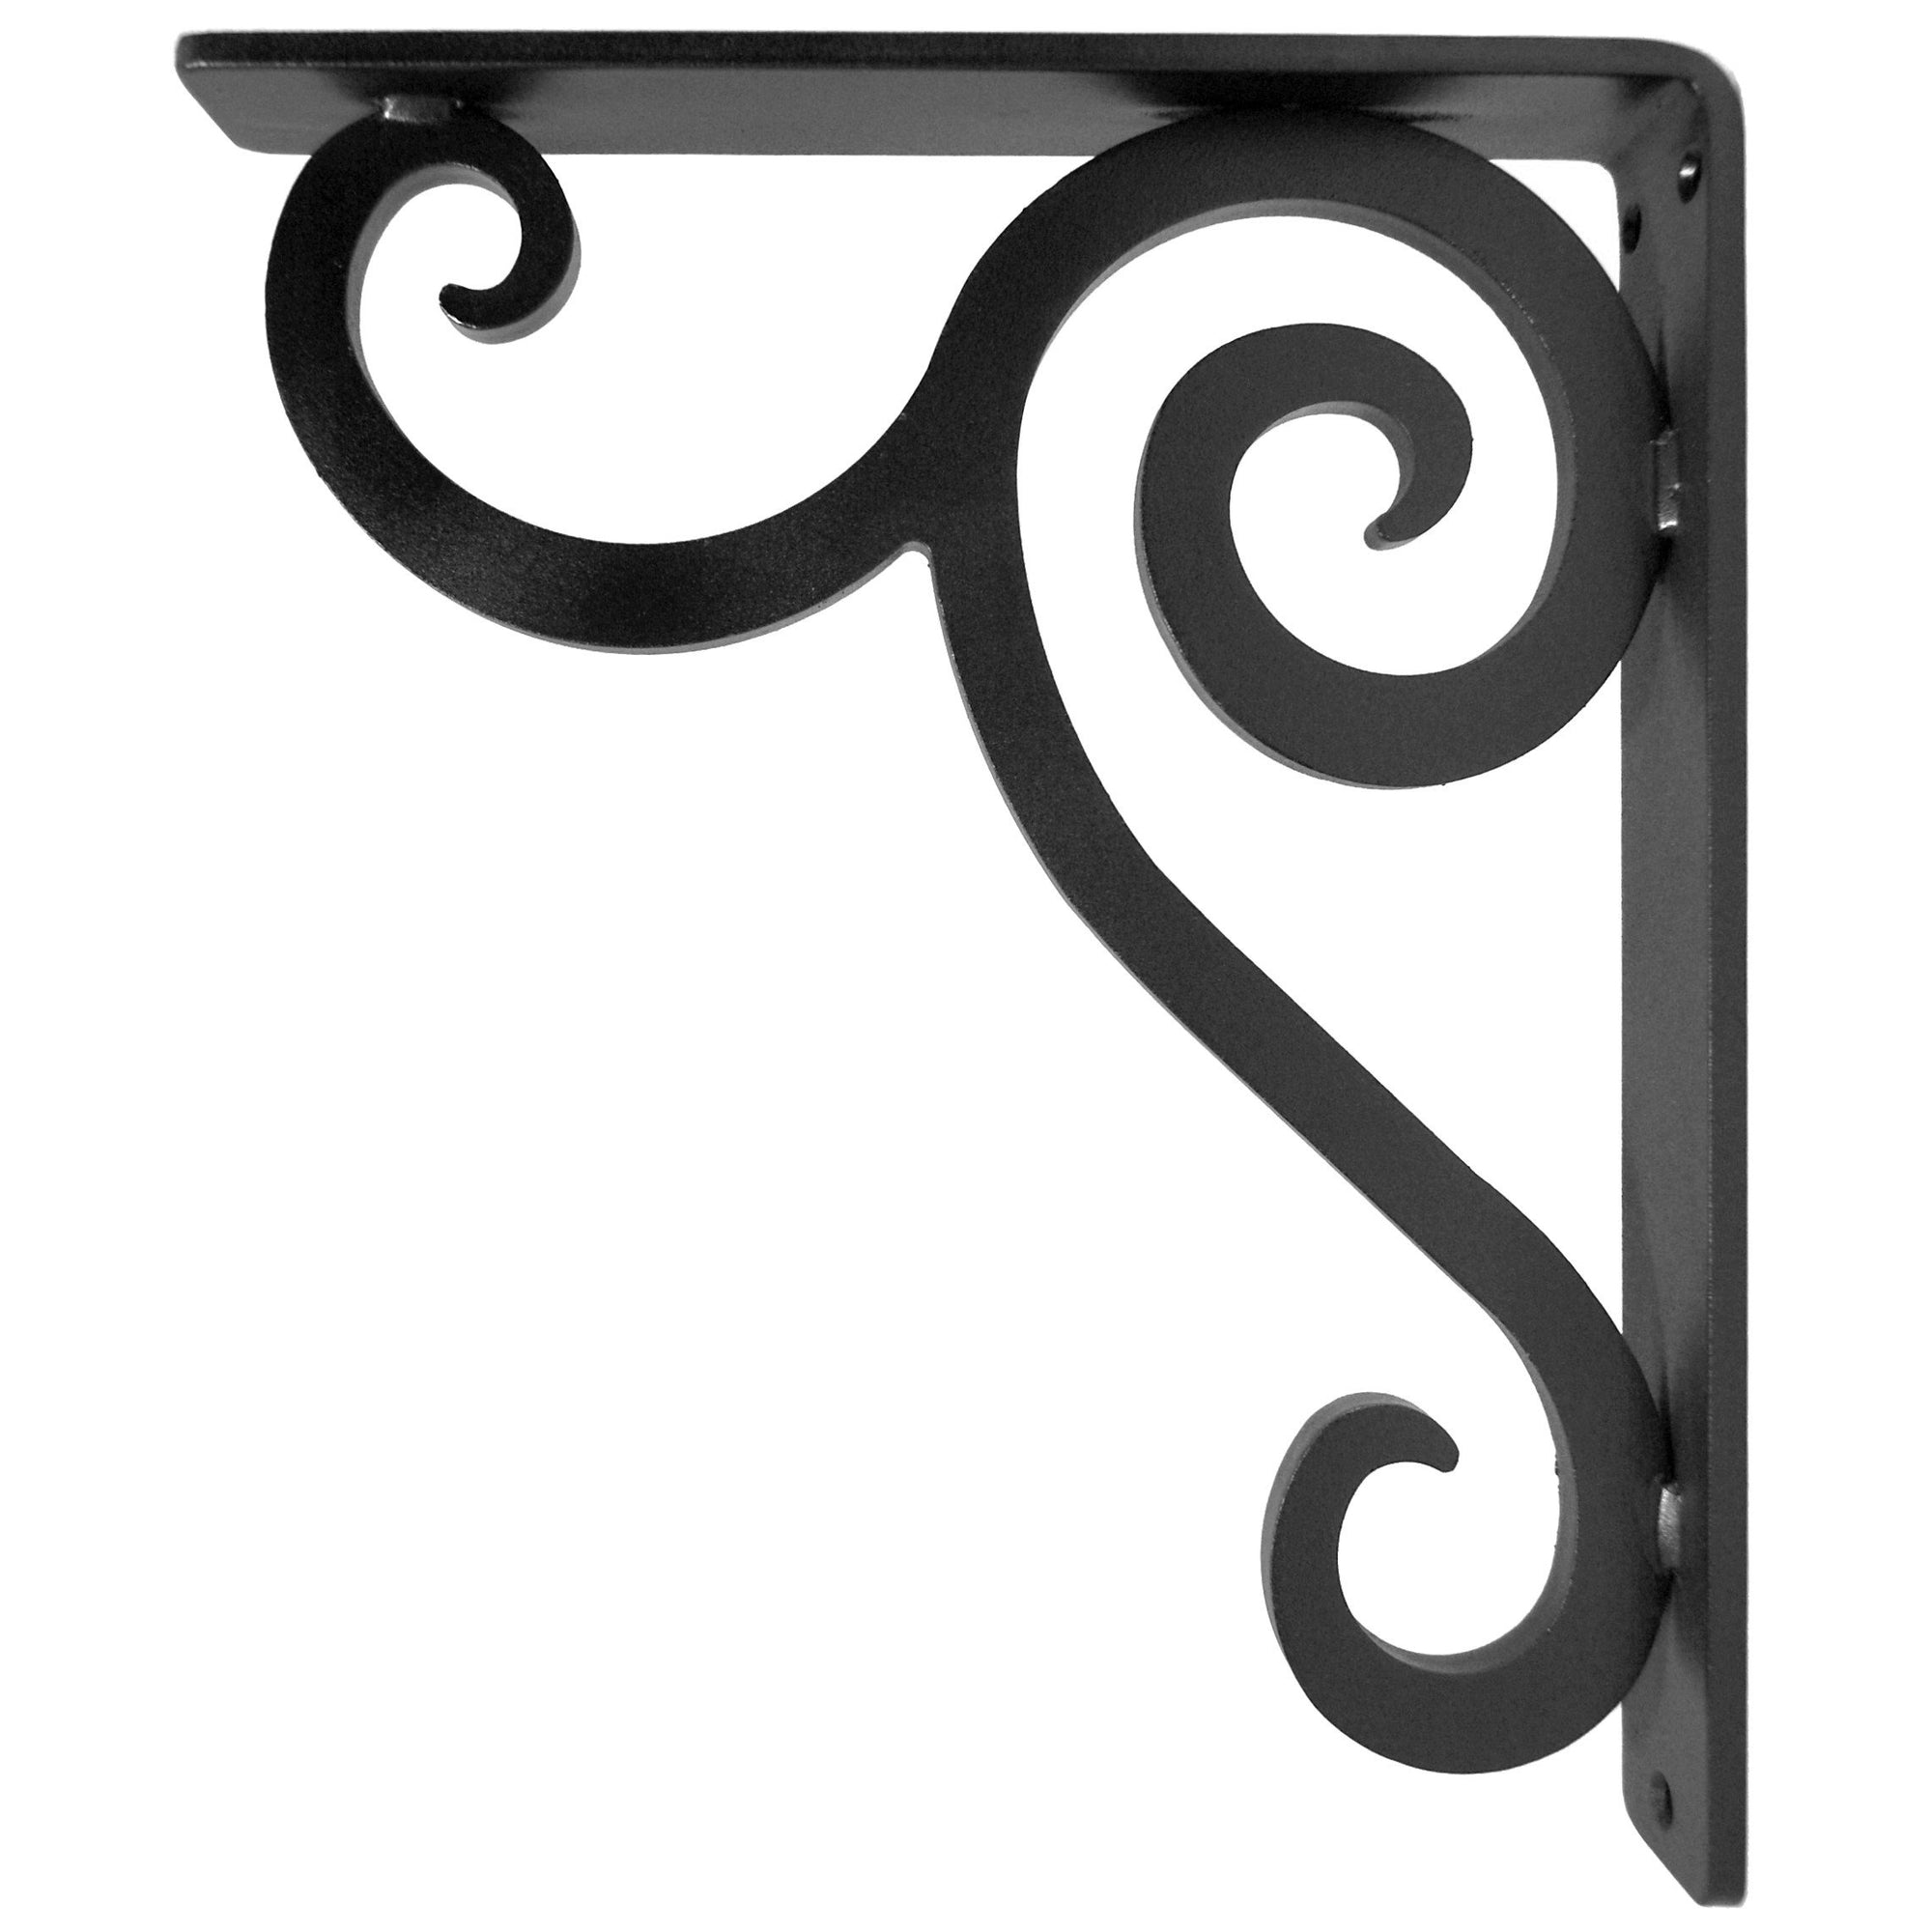 Linley Iron Countertop Corbel (single center brace)